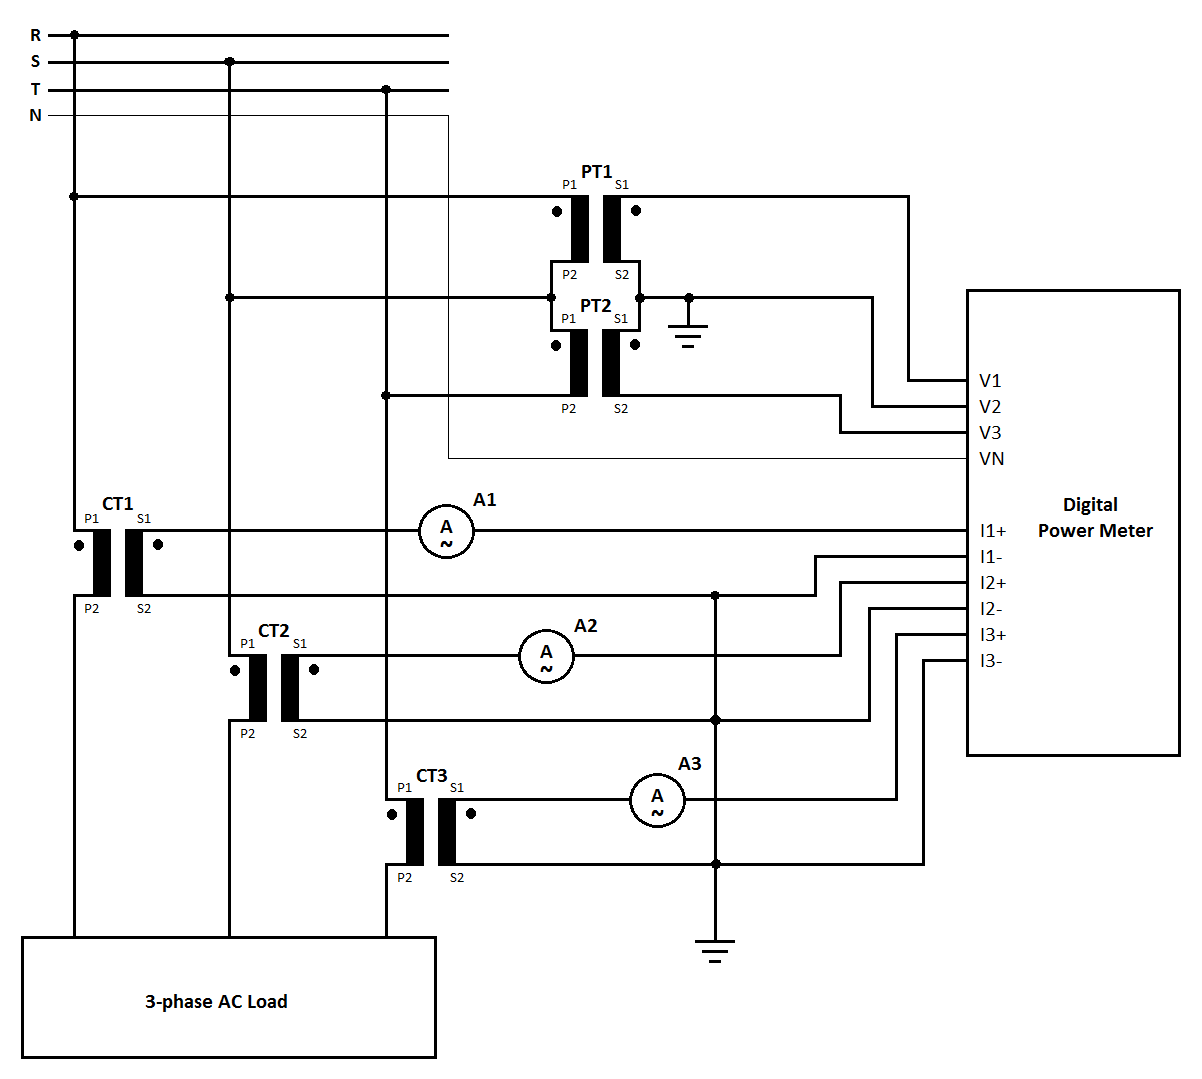 Electro-Magnetic World: Measurement Circuit for 3-phase AC Power on starter schematic, 3 phase generator schematic, transformer schematic, phase converter schematic, 3 phase control schematic, 3 phase capacitor, 3 phase diagram, reversing motor schematic, 3 wire switch schematic, ac motor speed control schematic, rectifier schematic,